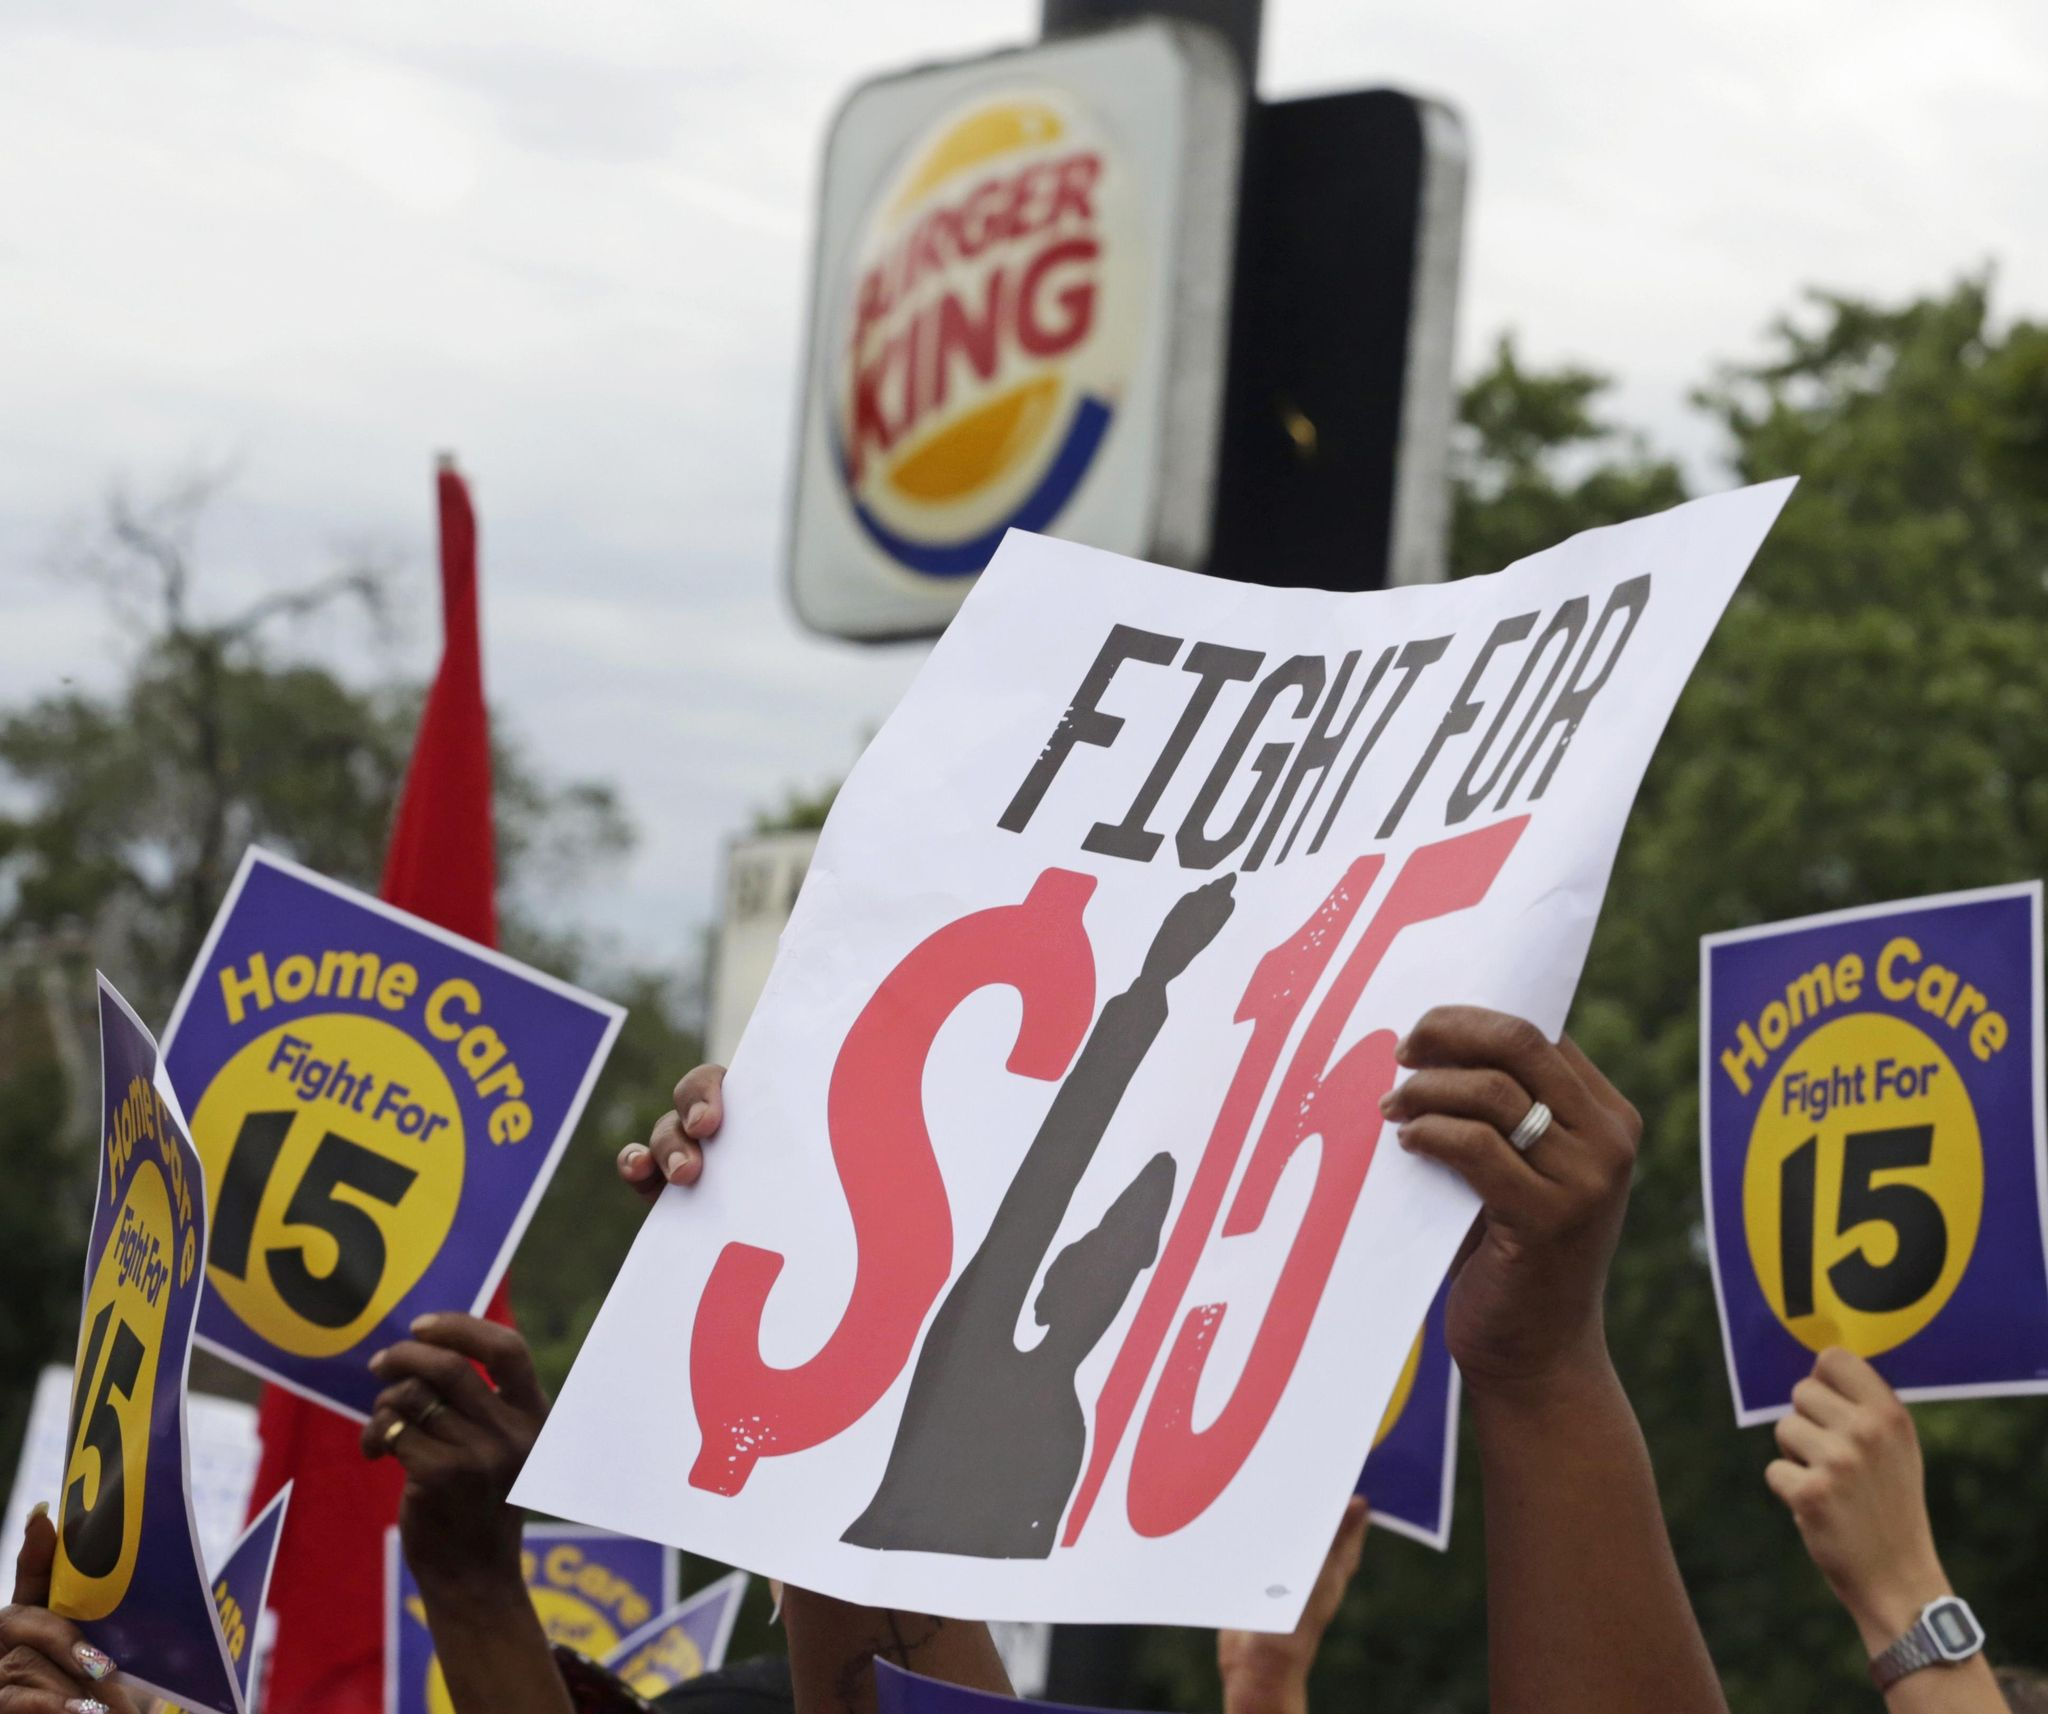 A $15 minimum wage: Bad news for low-income workers